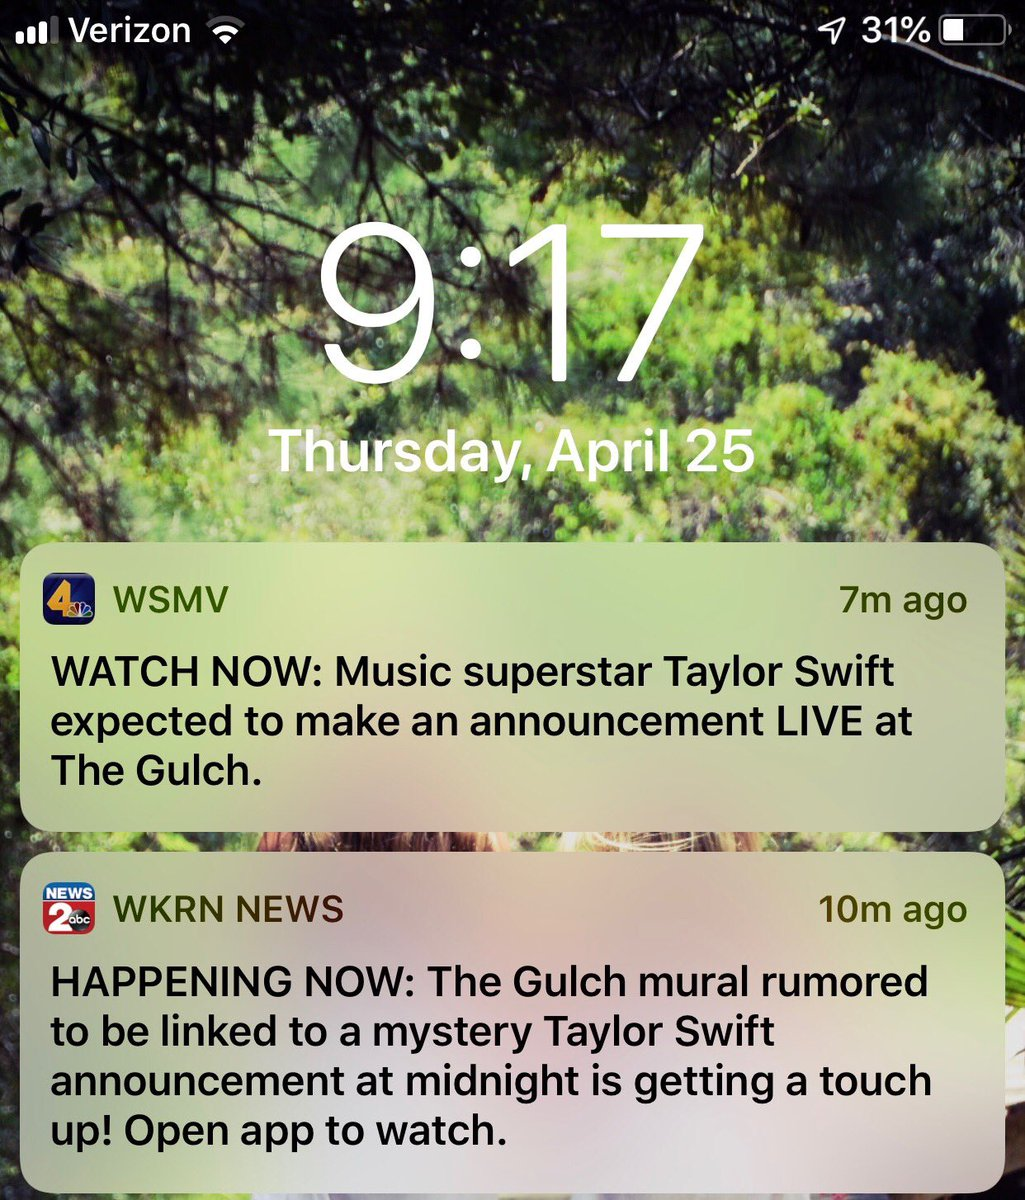 For all my @taylorswift13 loving friends...local announcement just received. <br>http://pic.twitter.com/4OMqC0vuJI